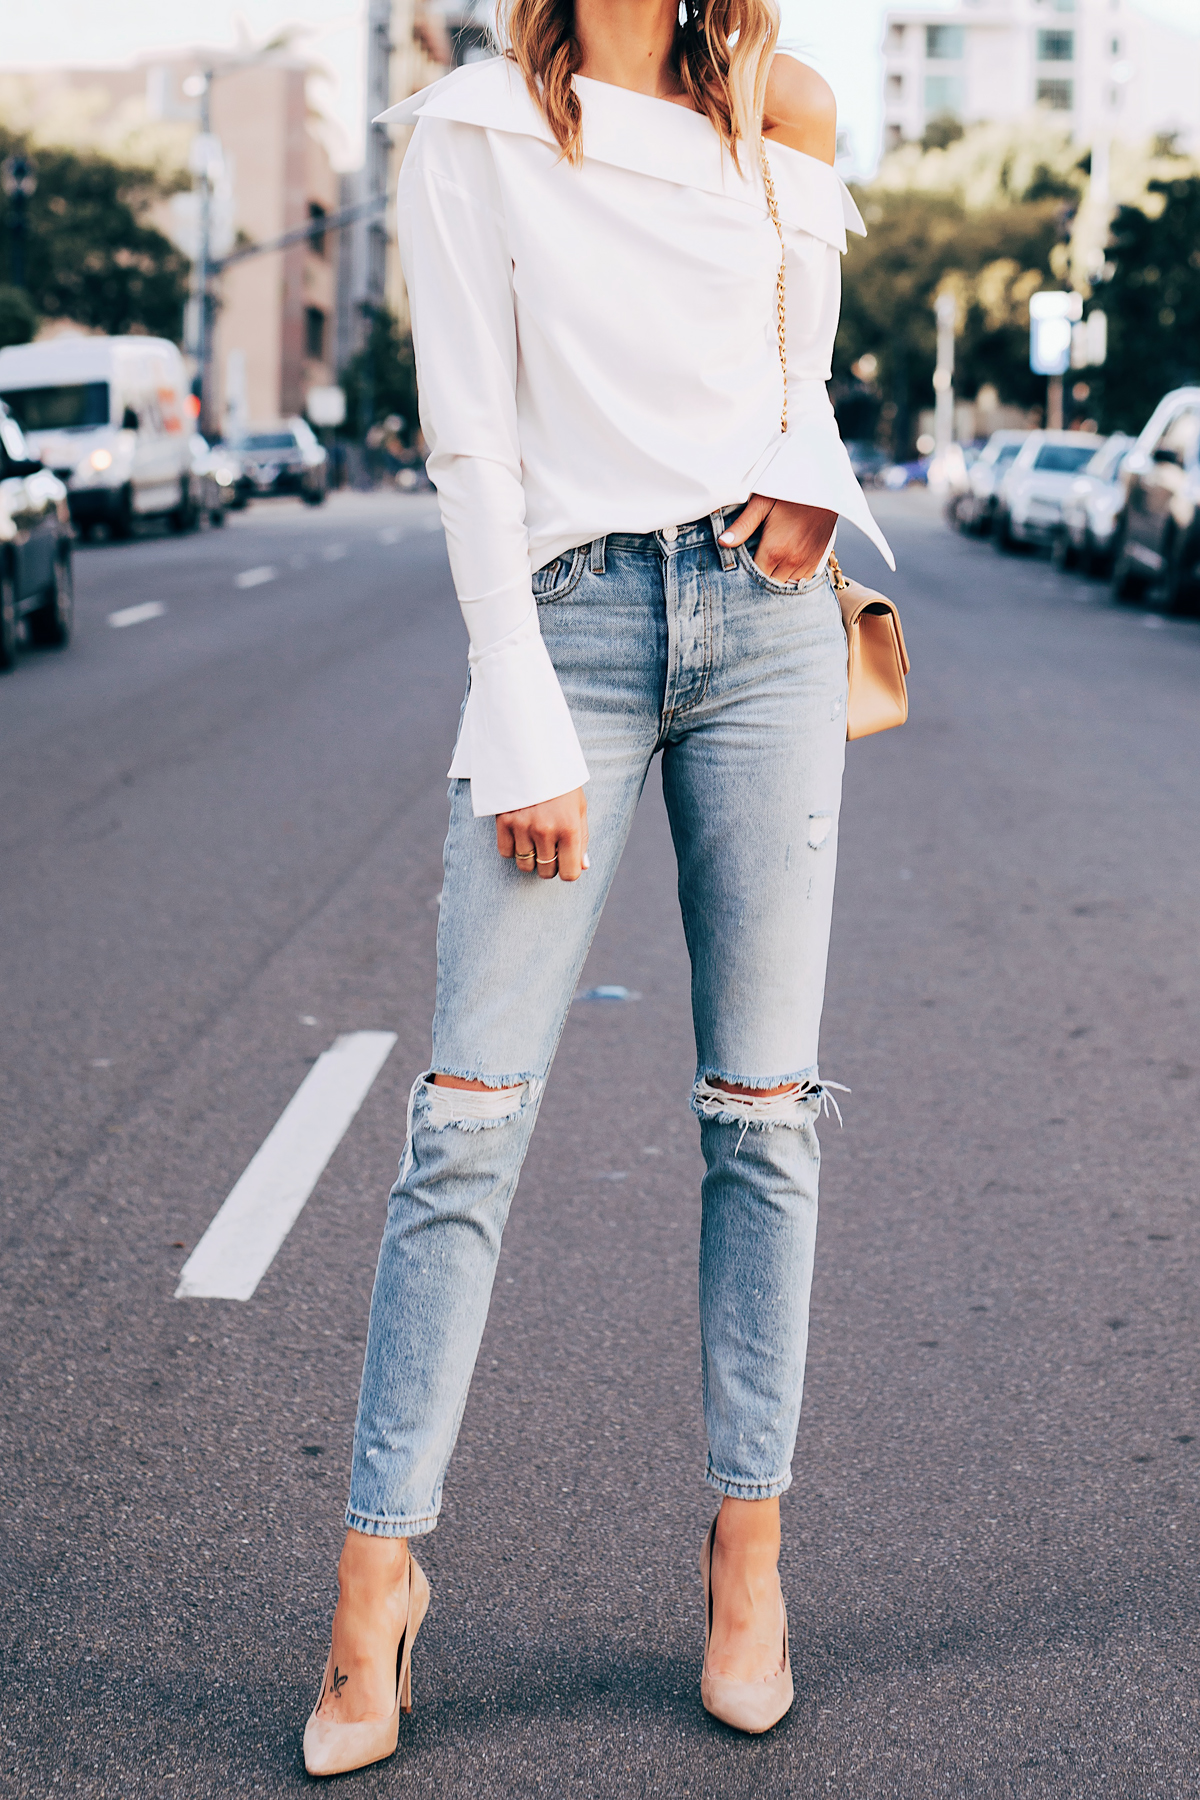 Blonde Woman Wearing Jing White off the Shoulder Top Denim Ripped Jeans Nude Pumps Fashion Jackson San Diego Fashion Blogger Street Style